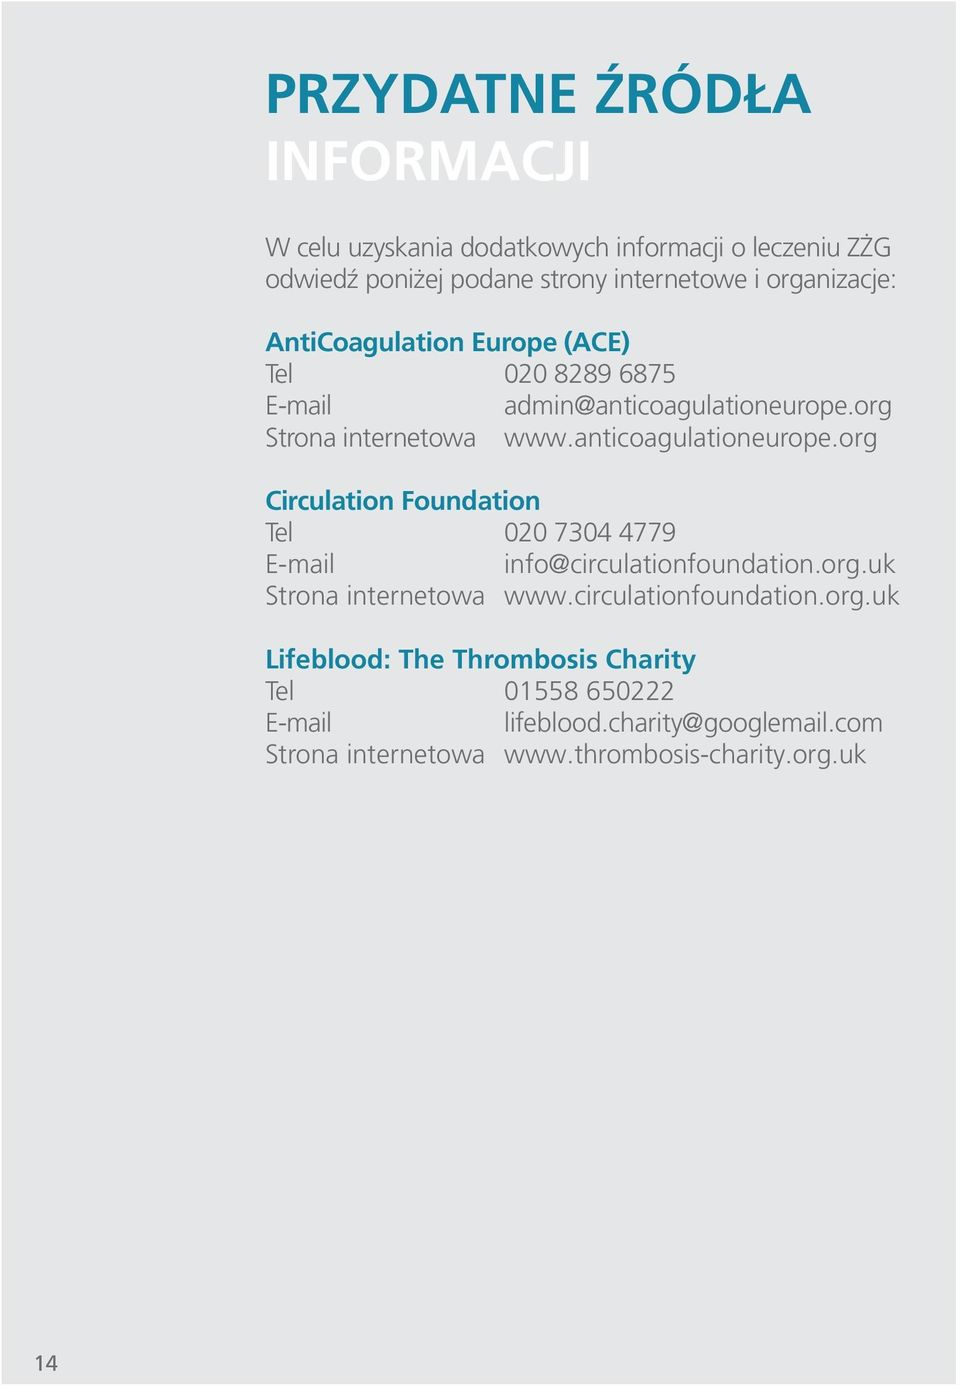 anticoagulationeurope.org Circulation Foundation Tel 020 7304 4779 E-mail info@circulationfoundation.org.uk Strona internetowa www.